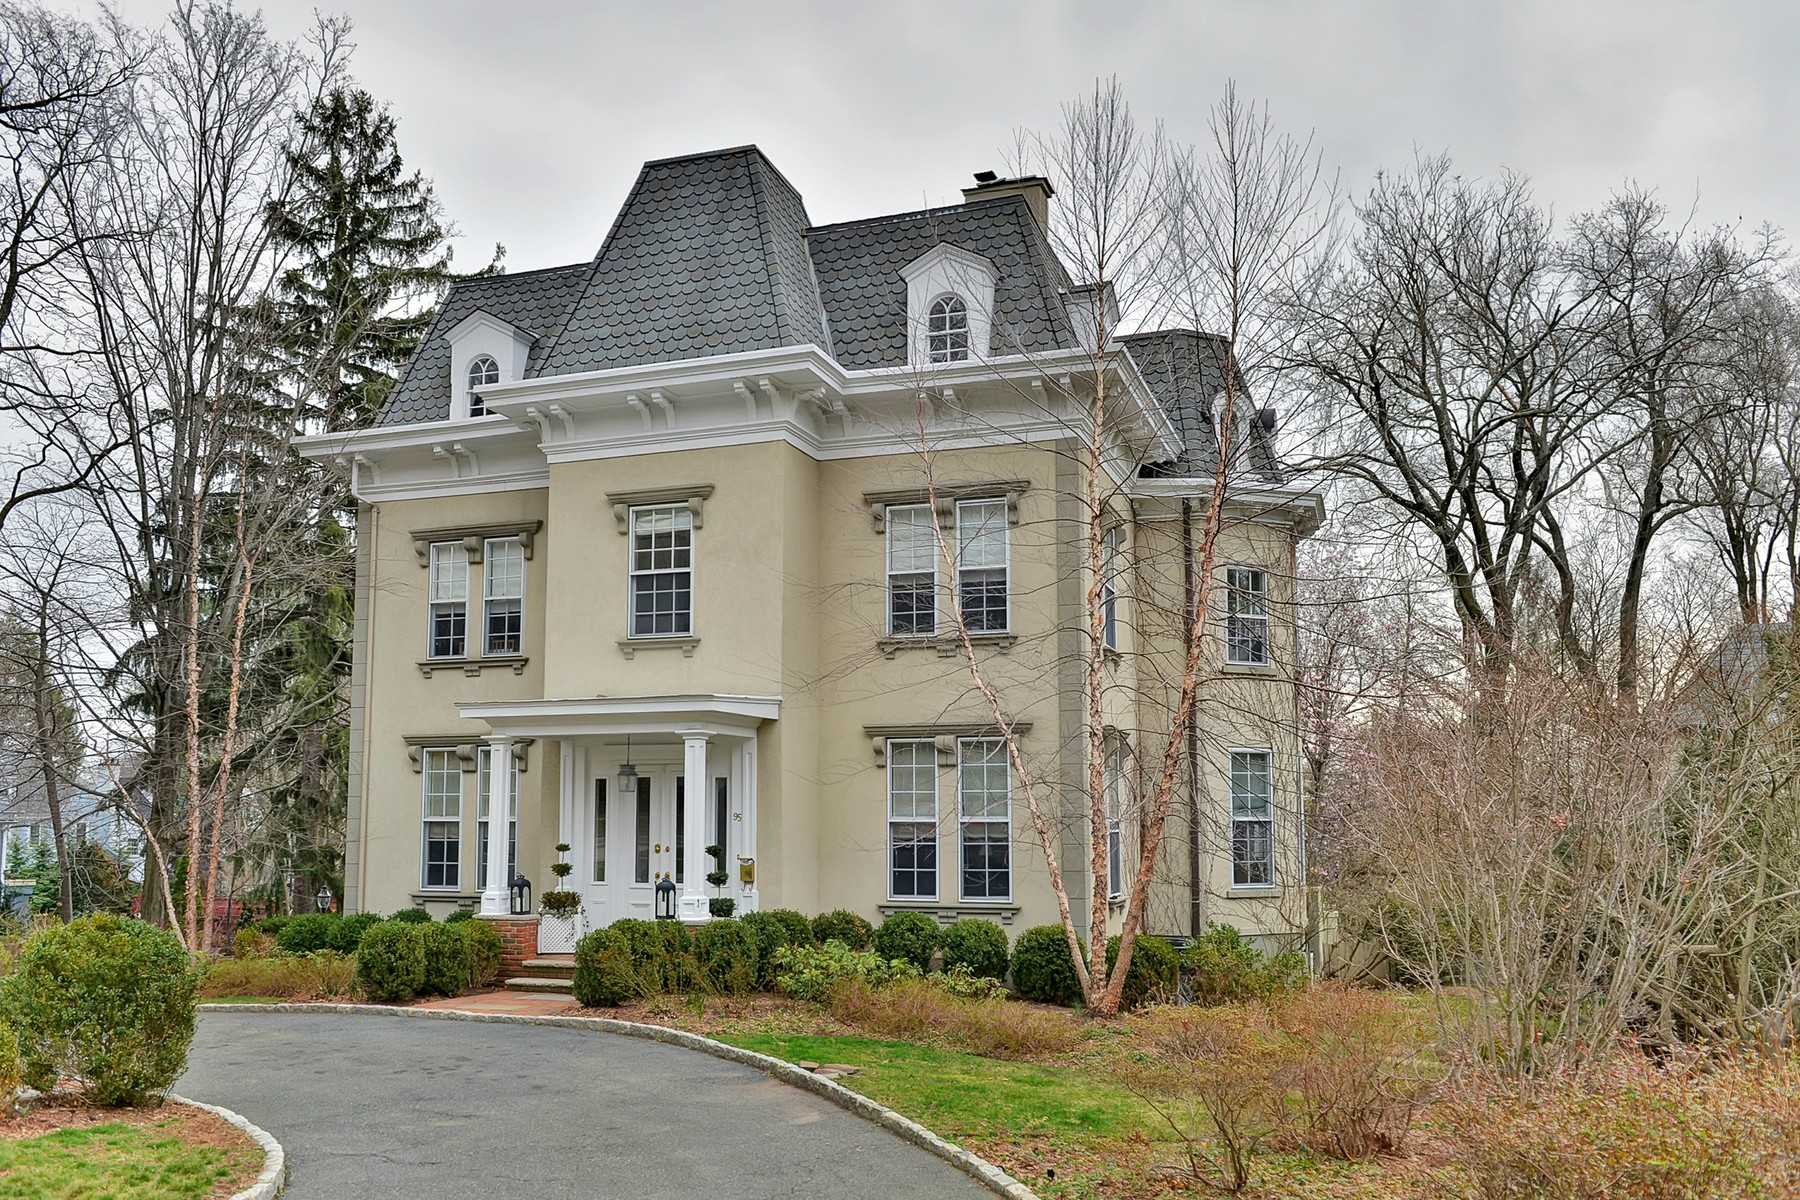 Single Family Home for Sale at GRAND EMPIRE VICTORIAN 95 South Mountain Avenue, Montclair, New Jersey 07042 United States